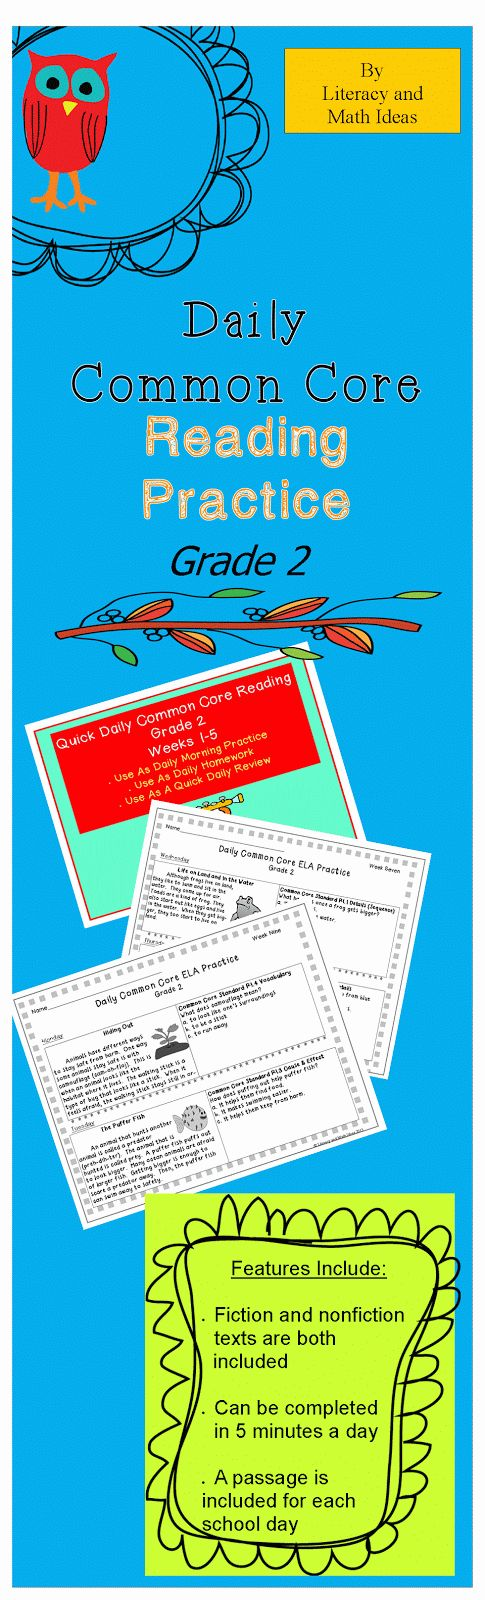 Daily Common Core Reading Practice~ This can be completed in just five minutes each day.  There is a short passage and Common Core questions for each school day.  Folktales, realistic fiction, science topics, and social studies topics are all included.  Each bundle contains five weeks worth of daily Common Core practice.  Many standards repeat across the weeks to provide steady Common Core review and keep comprehension skills sharp. $